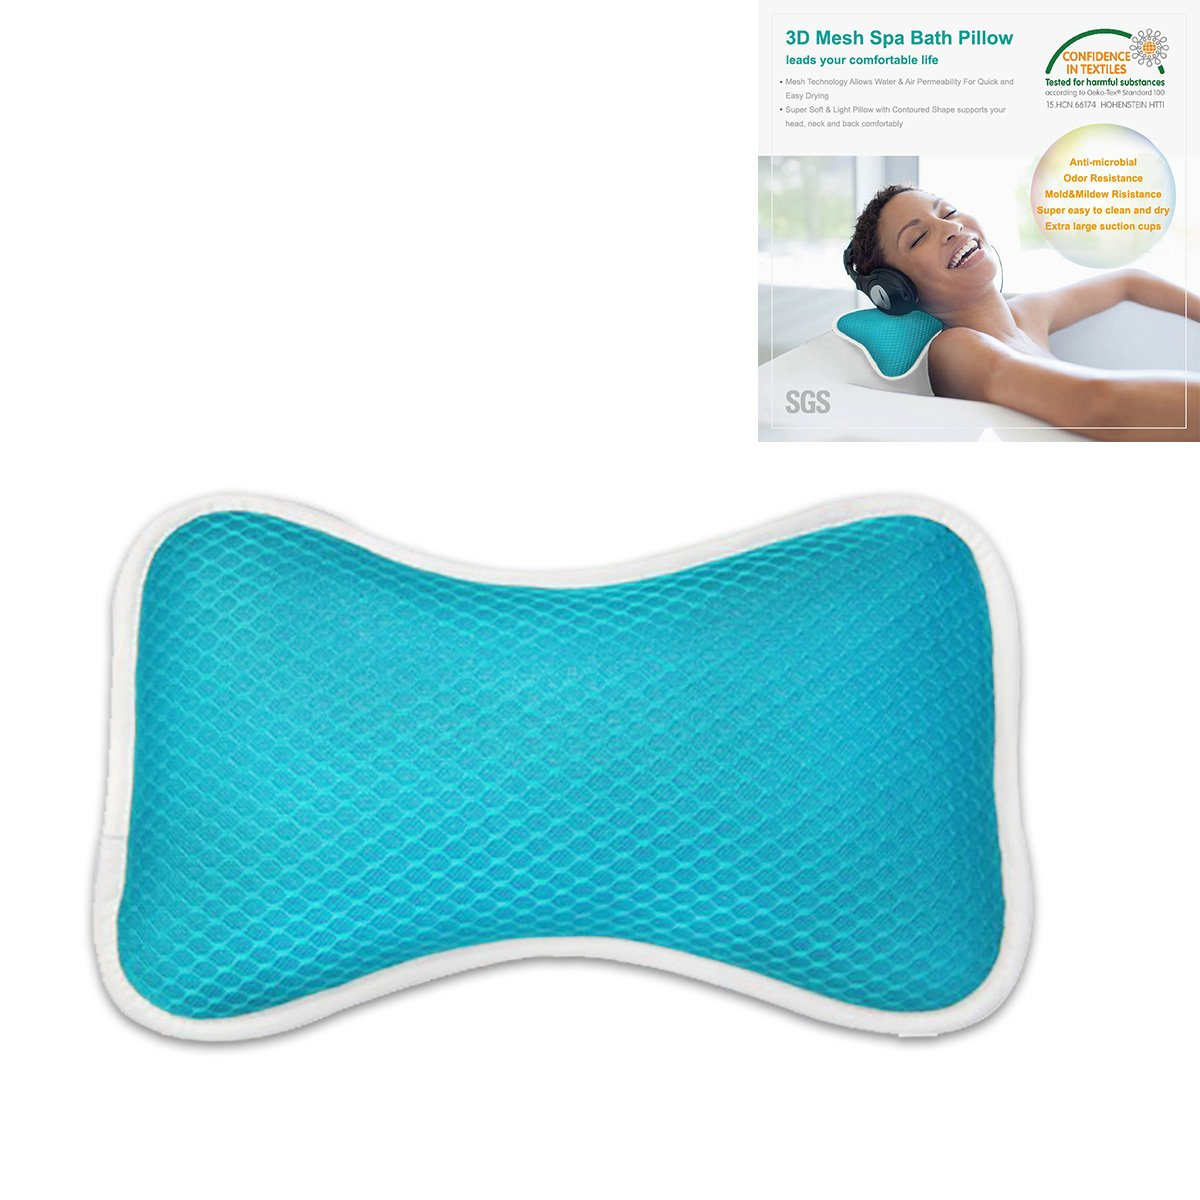 Amazon.com : Non-Slip Bath Pillow with Suction Cups, Supports Neck ...